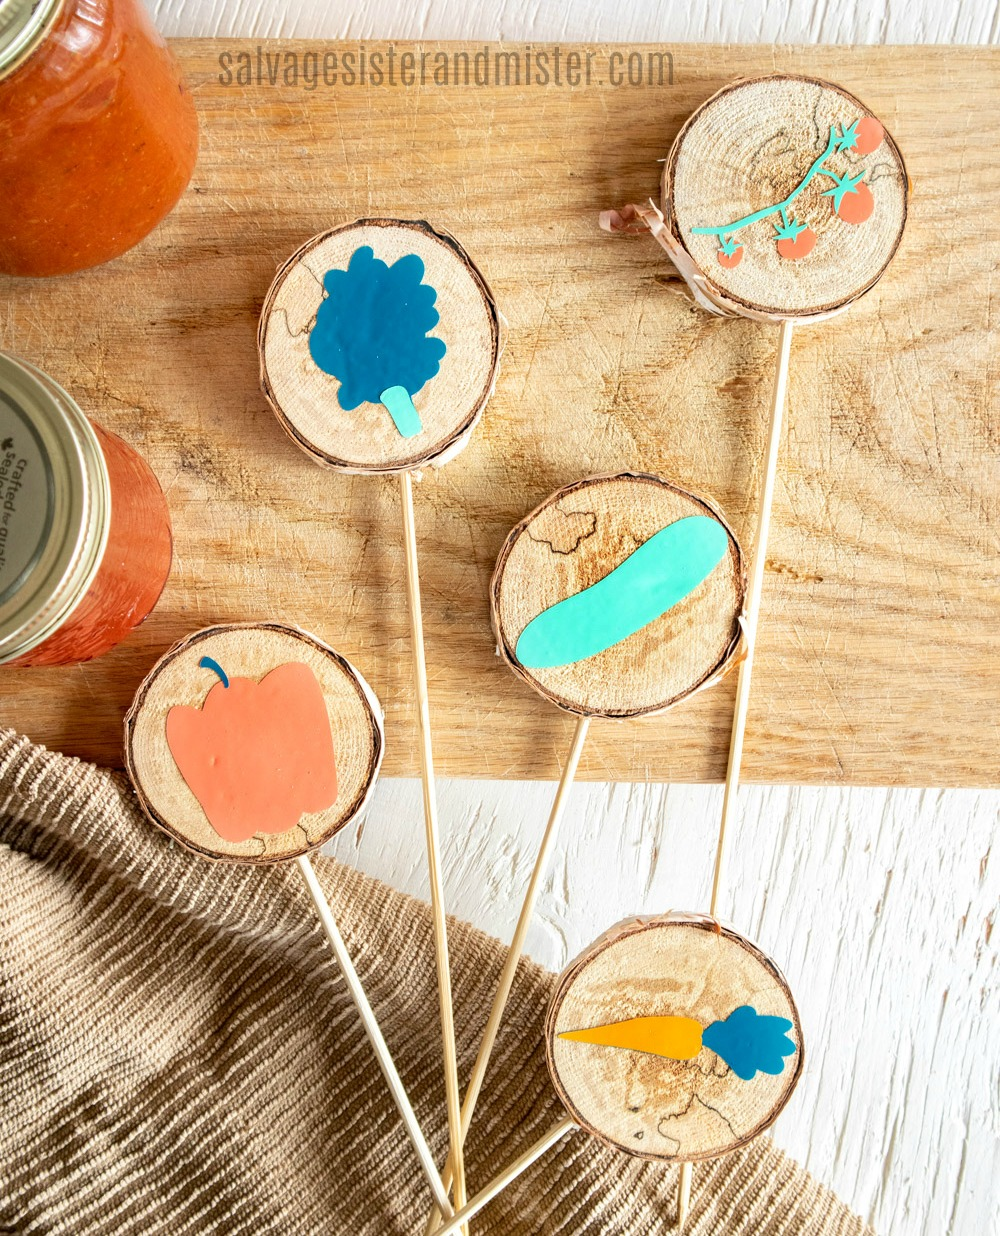 Turn a broken tree branch into fun little garden markers with this DIY tutorial on salvagesisterandmister.com